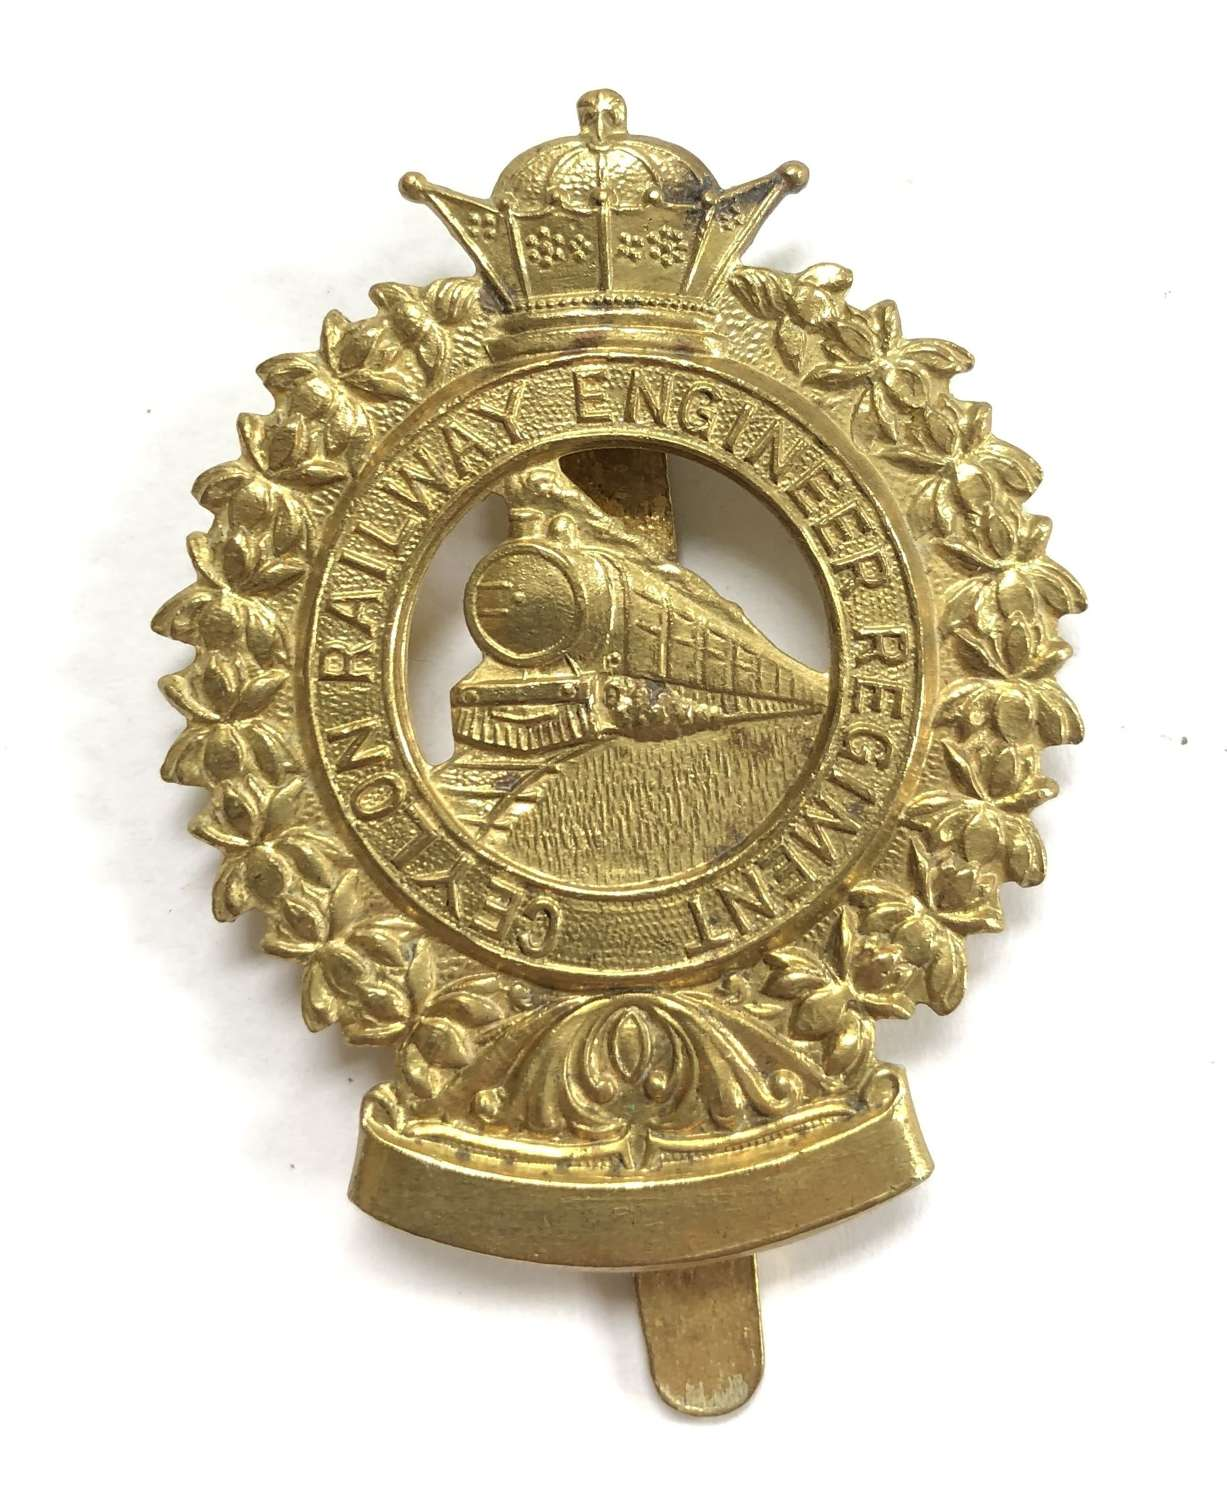 Ceylon Railway Engineer Regiment brass cap badge by Dowler, Birmingham